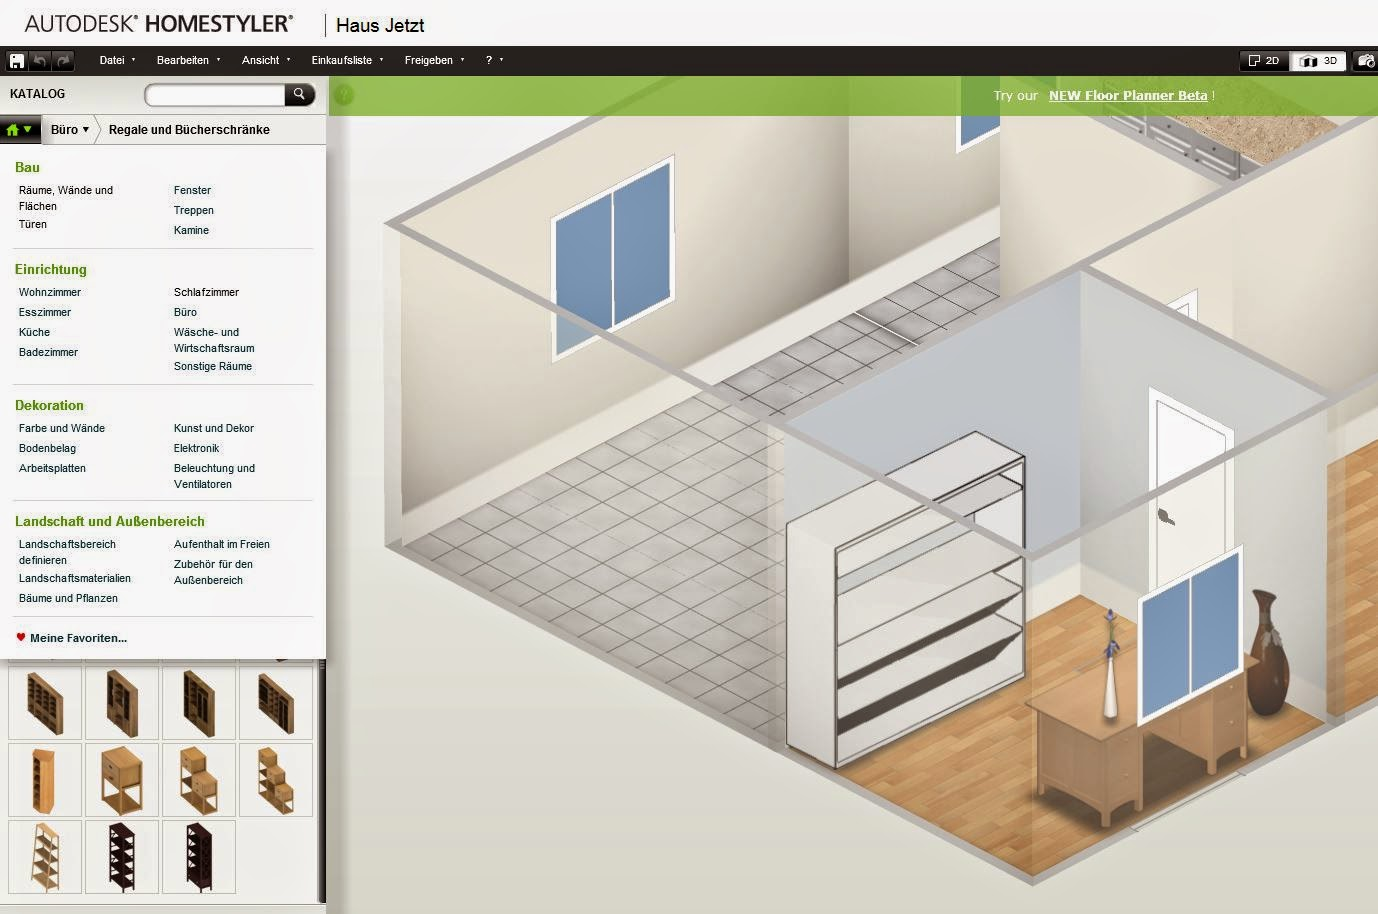 gis tiefbau contelos blog cad autodesk gold partner autodesk homestyler. Black Bedroom Furniture Sets. Home Design Ideas